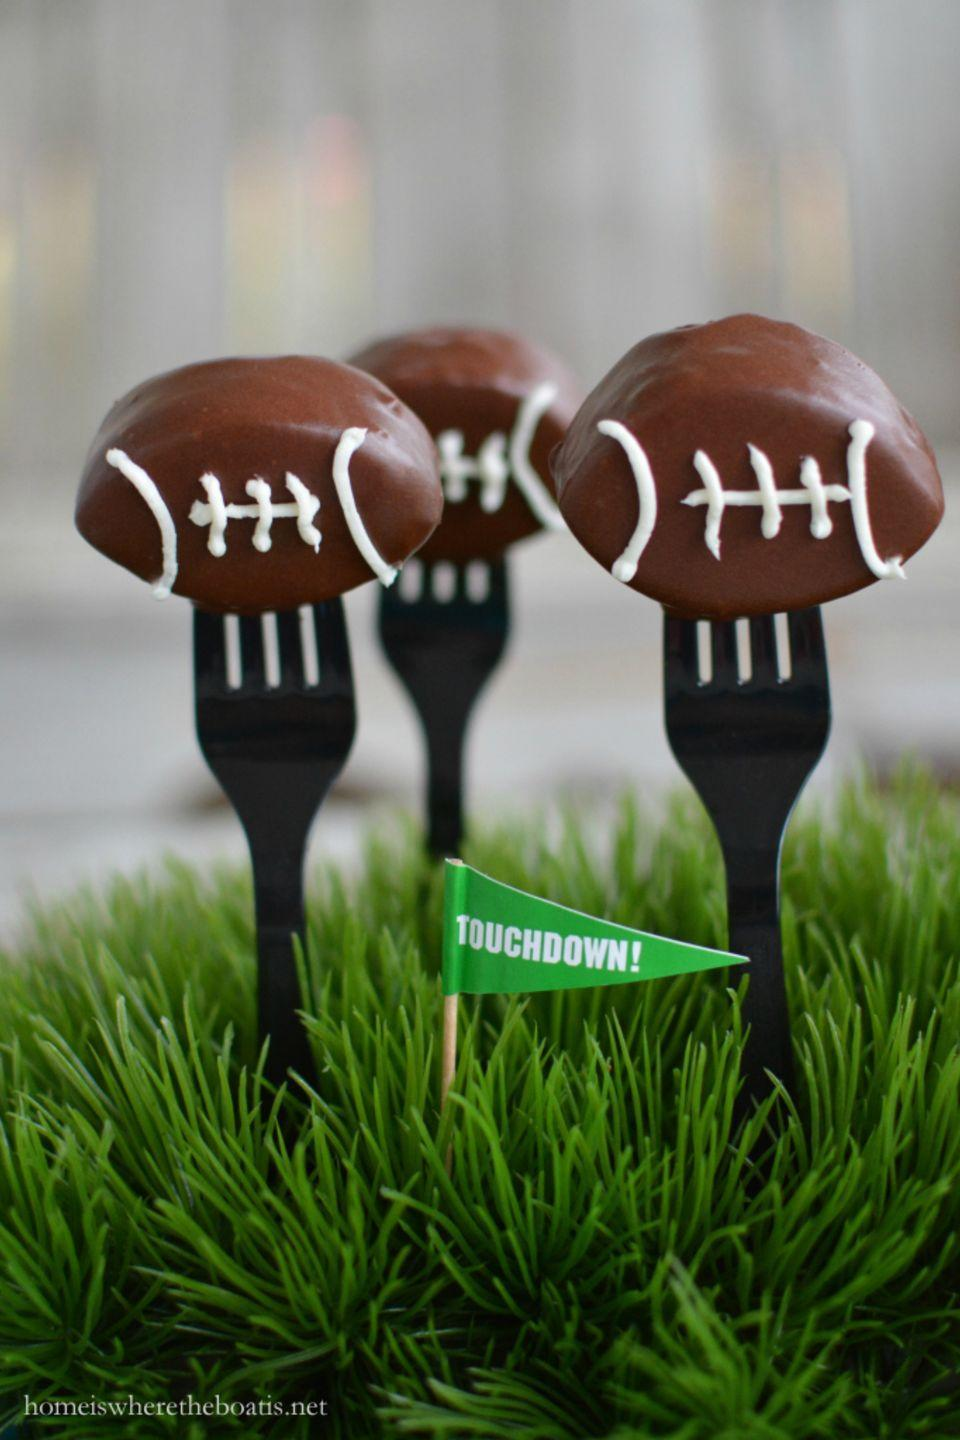 """<p>These touchdown treats are hard to beat.</p><p><strong>Get the recipe at <a href=""""https://homeiswheretheboatis.net/2016/02/05/keep-pounding-football-cake-pops/"""" rel=""""nofollow noopener"""" target=""""_blank"""" data-ylk=""""slk:Home is Where the Boat Is"""" class=""""link rapid-noclick-resp"""">Home is Where the Boat Is</a>.</strong></p>"""